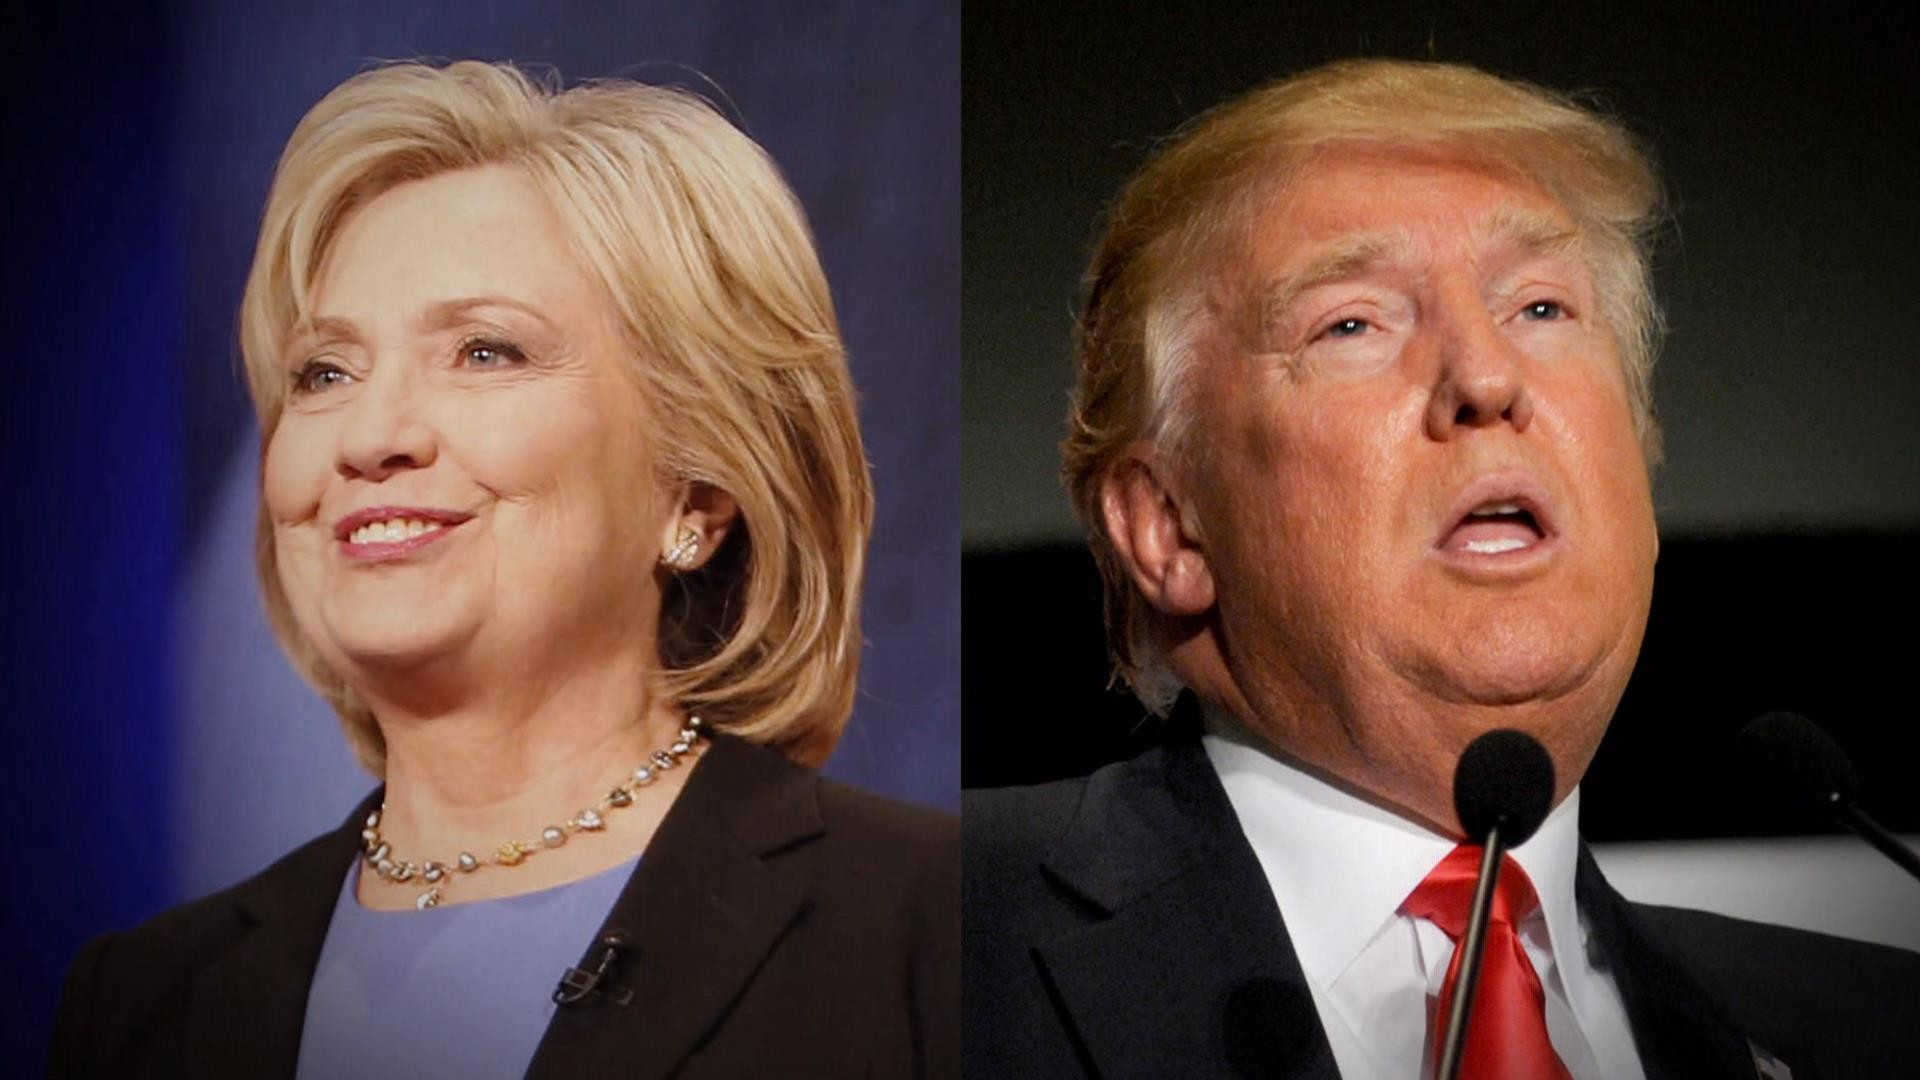 Hillary Clinton May Find Campaign's Rationale in Donald Trump – NBC News